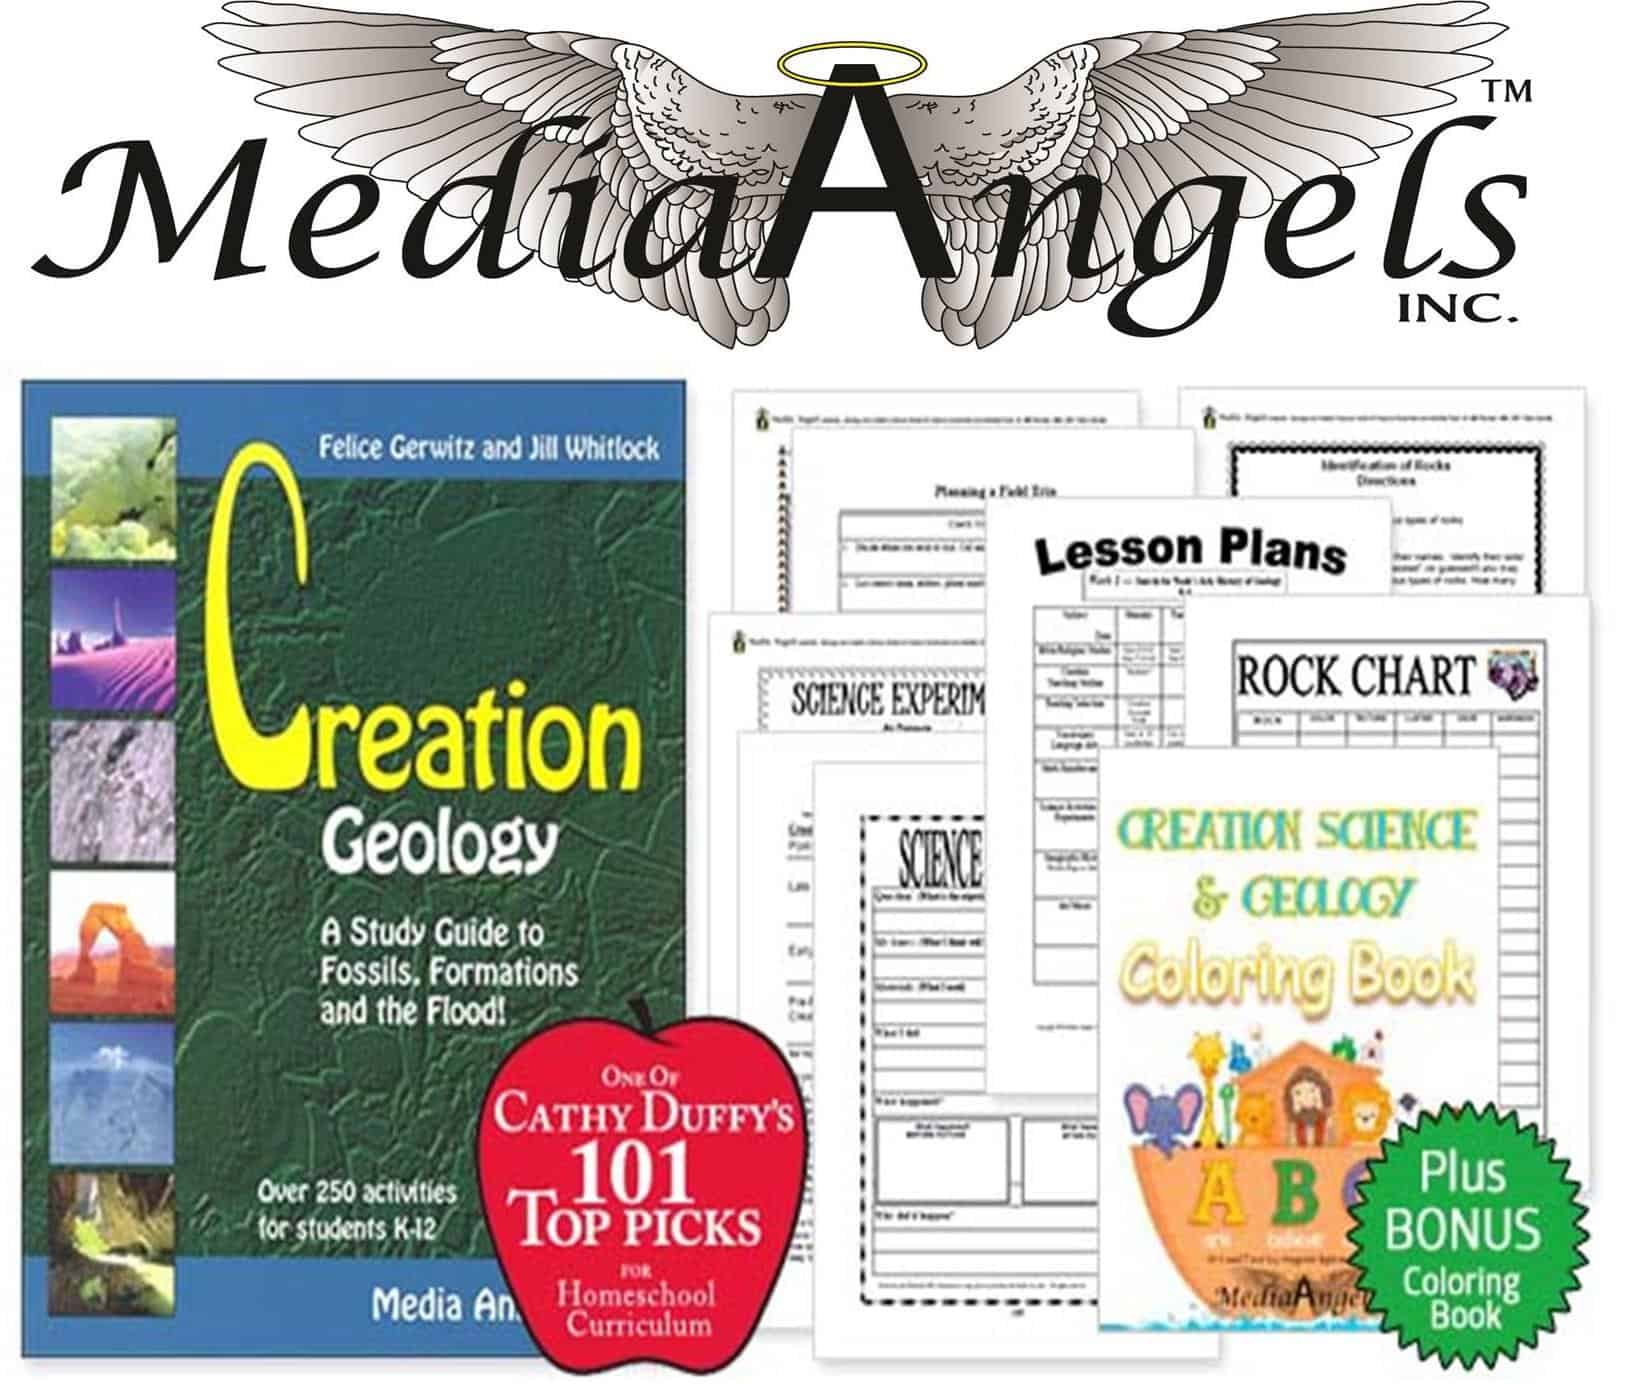 3 FREE Geology Curriculum Books $39.89 value - ends 9-15-15 ...